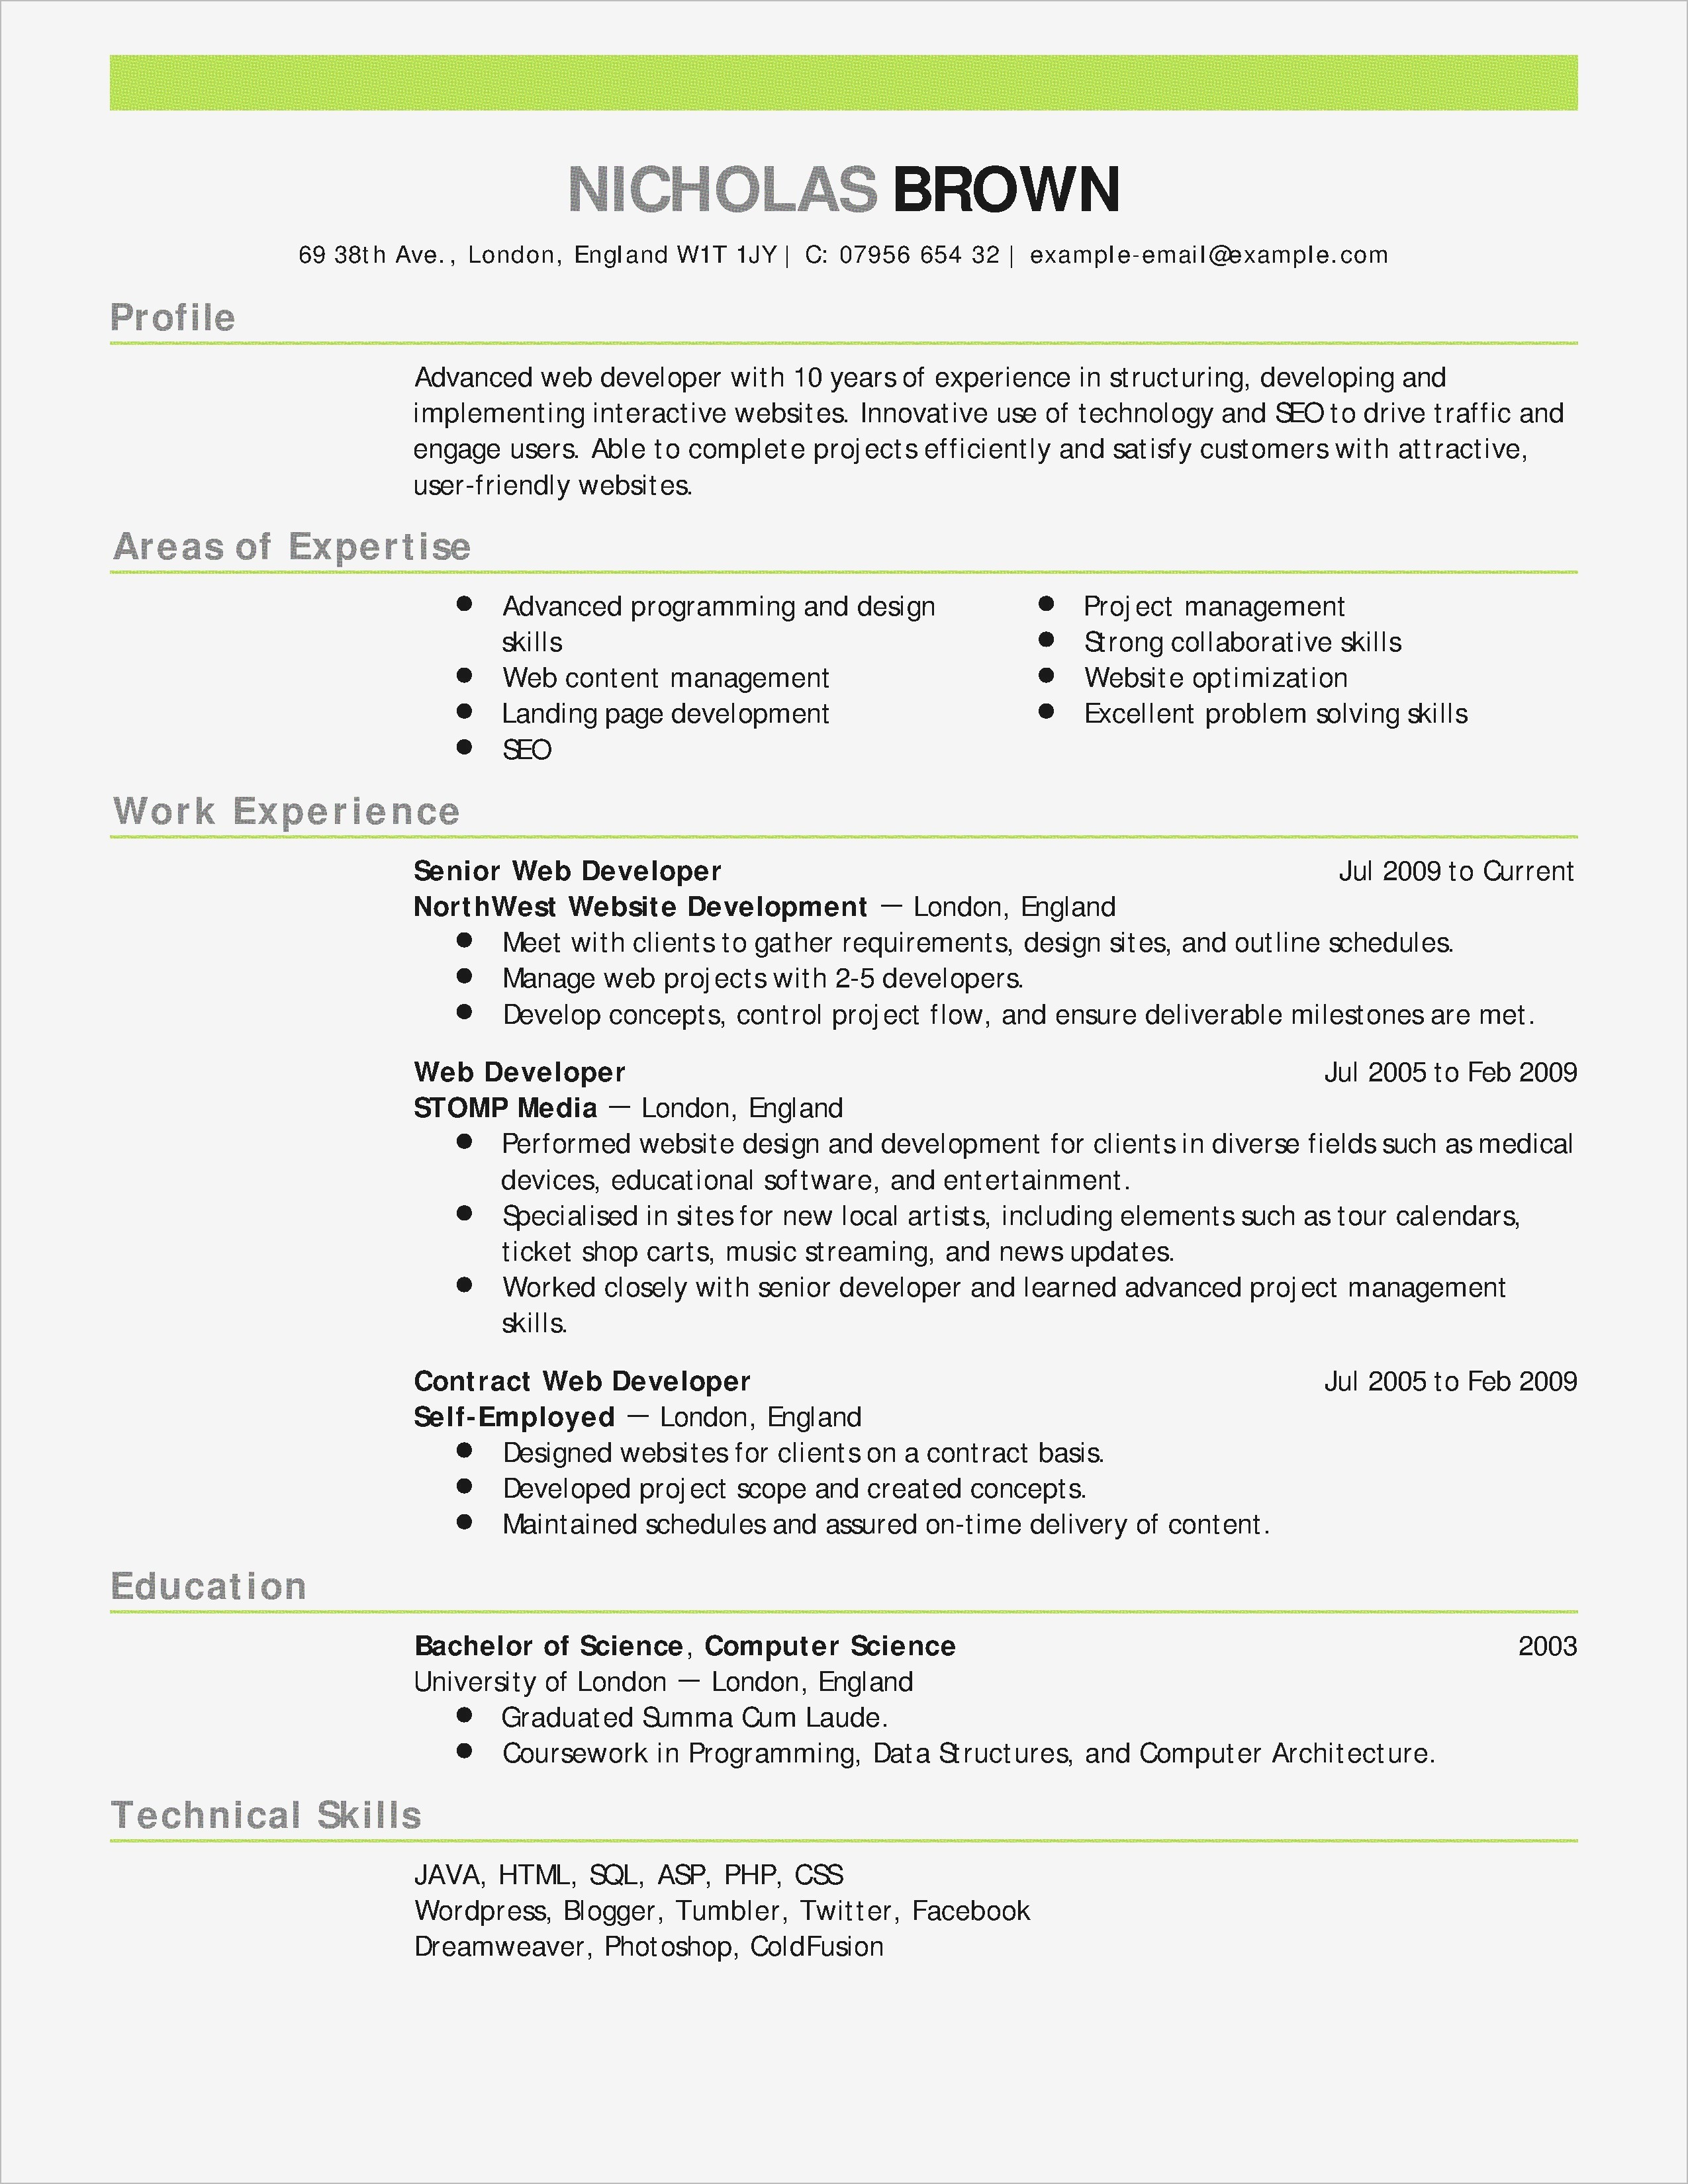 Resume and Cover Letter Template - Legal Cover Letter Template Gallery